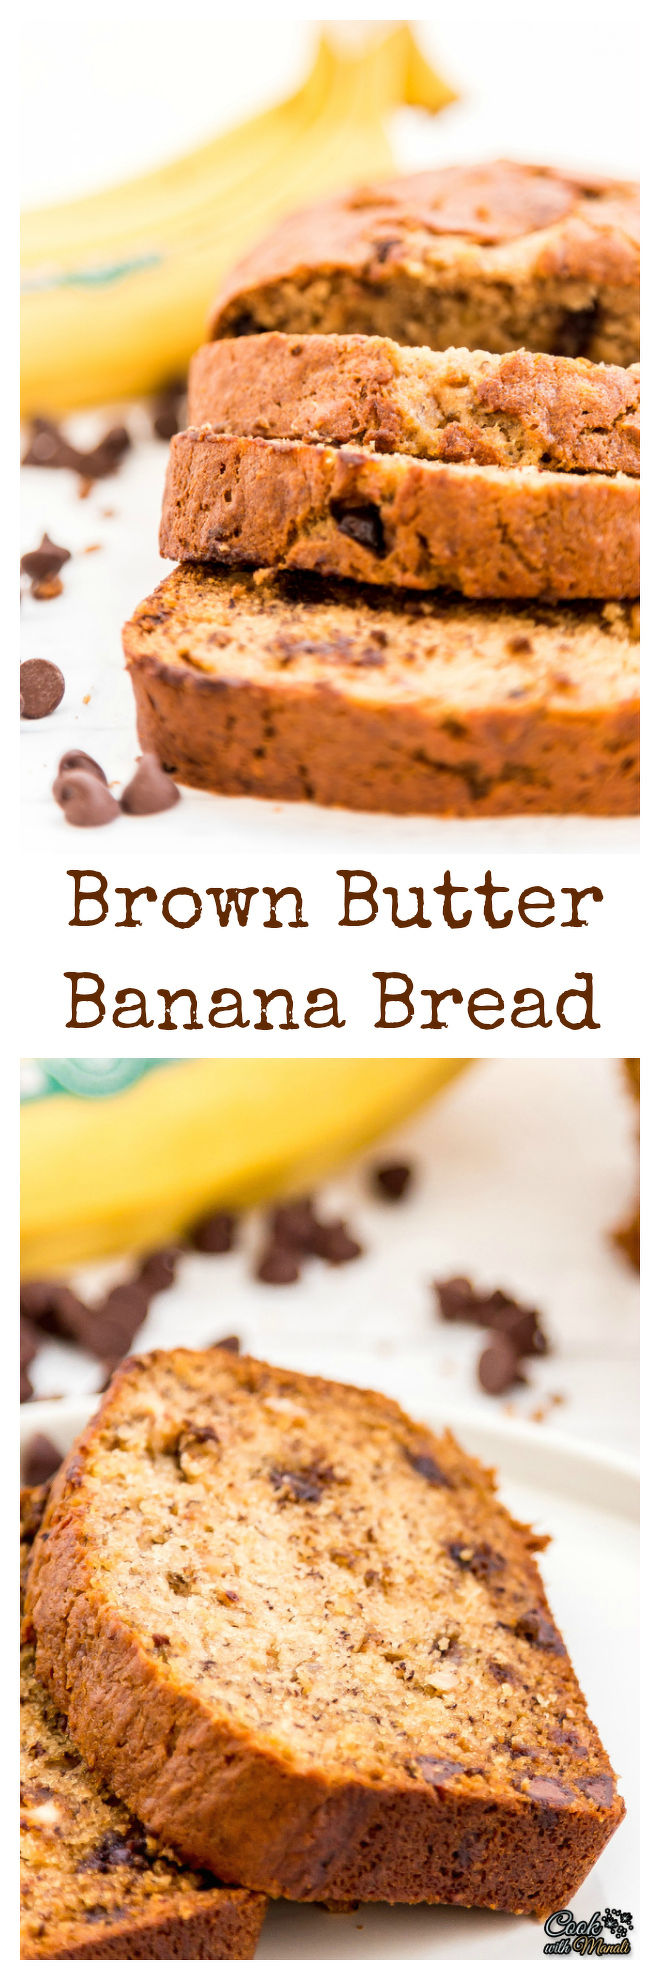 Brown Butter Banana Bread Collage-nocwm